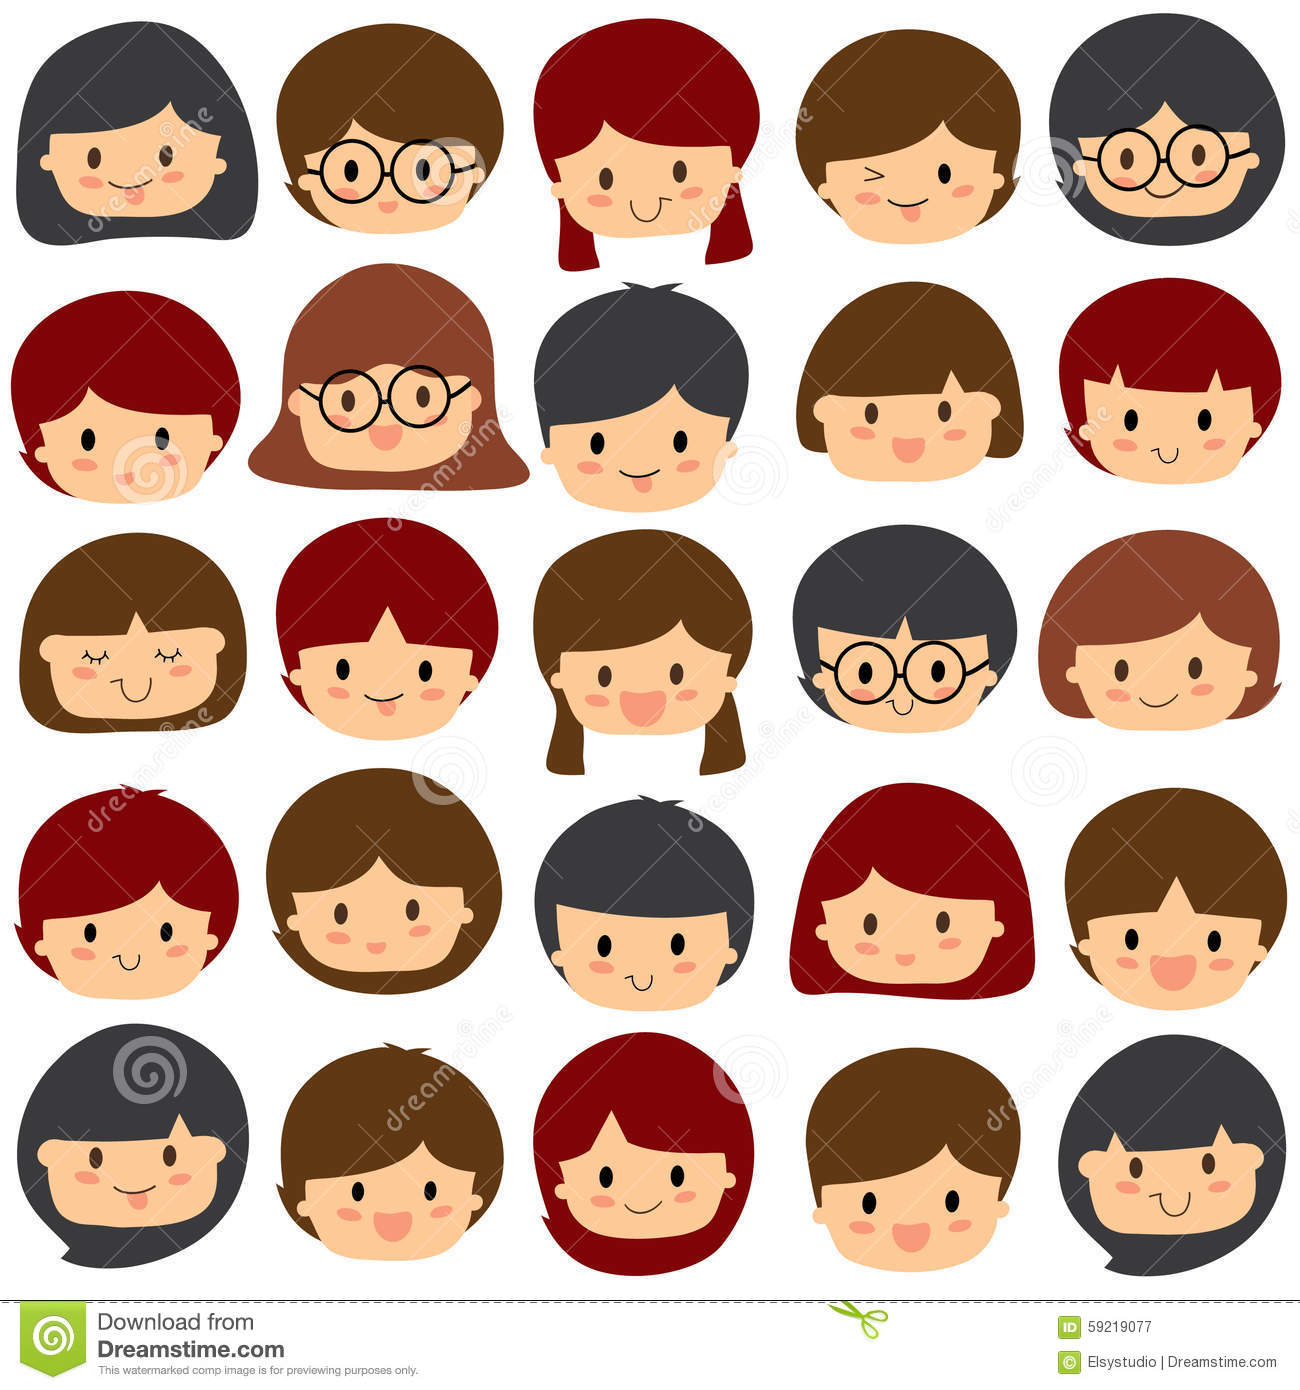 Clipart kids character heads jpg black and white stock Clipart kids character heads - ClipartFest jpg black and white stock